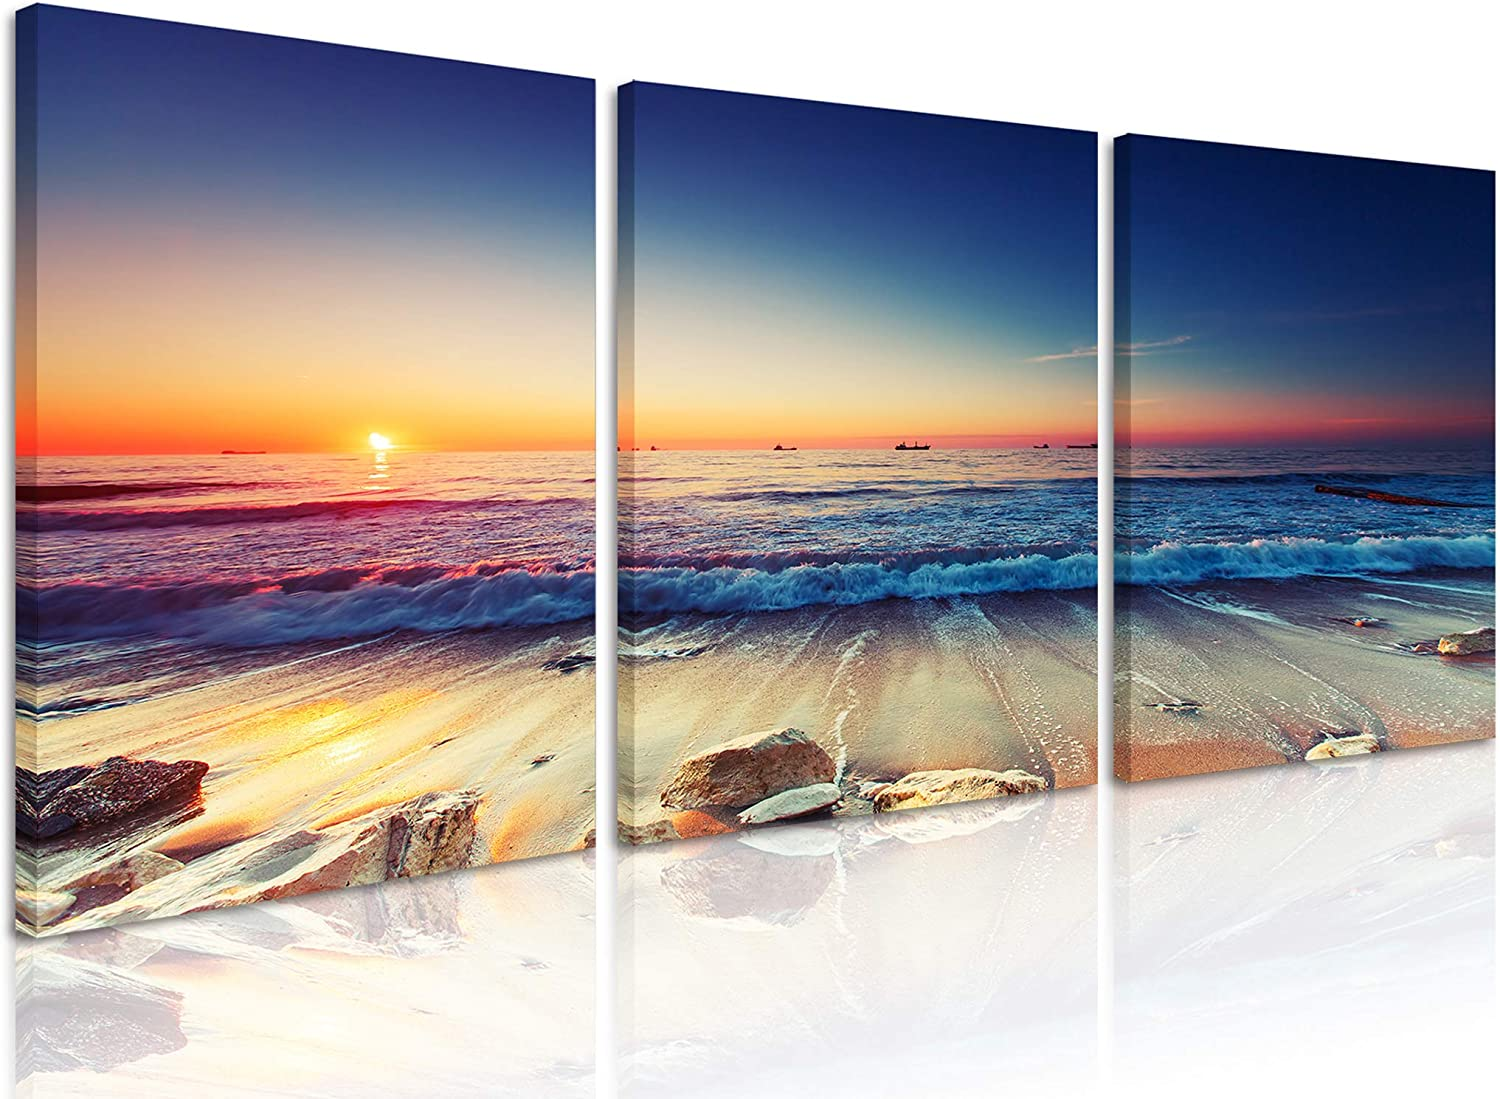 Natural art Weathered Rocks on The Beach Pictures for Dinning Room Wall Decor Beautiful Sunrise Scenery of Ocean Canvas Painting Framed 12x16 Inch 3 Panels